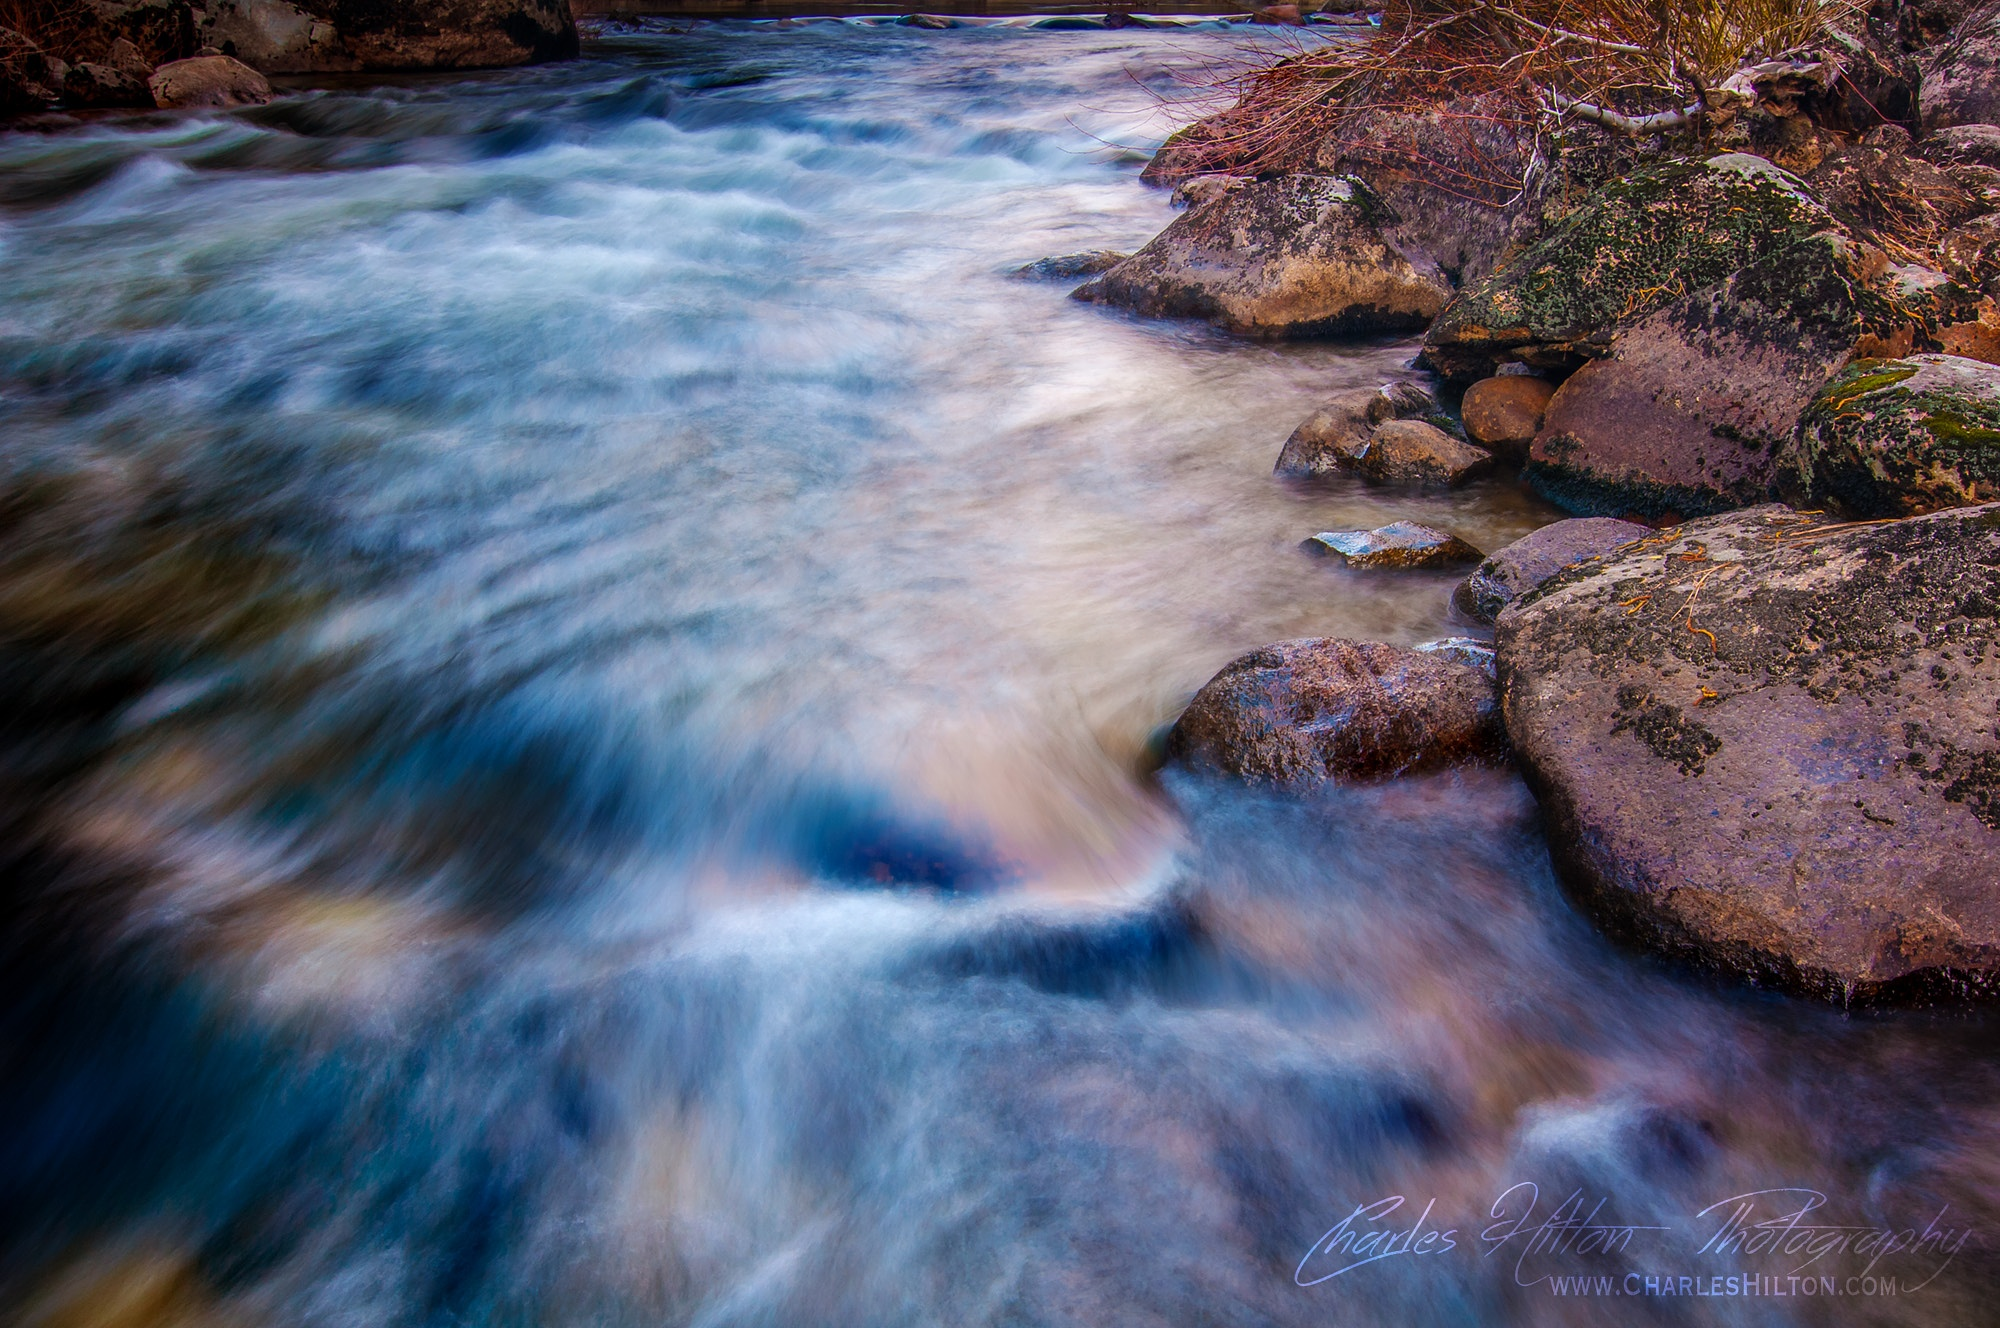 Soft Flowing by CharlesHilton